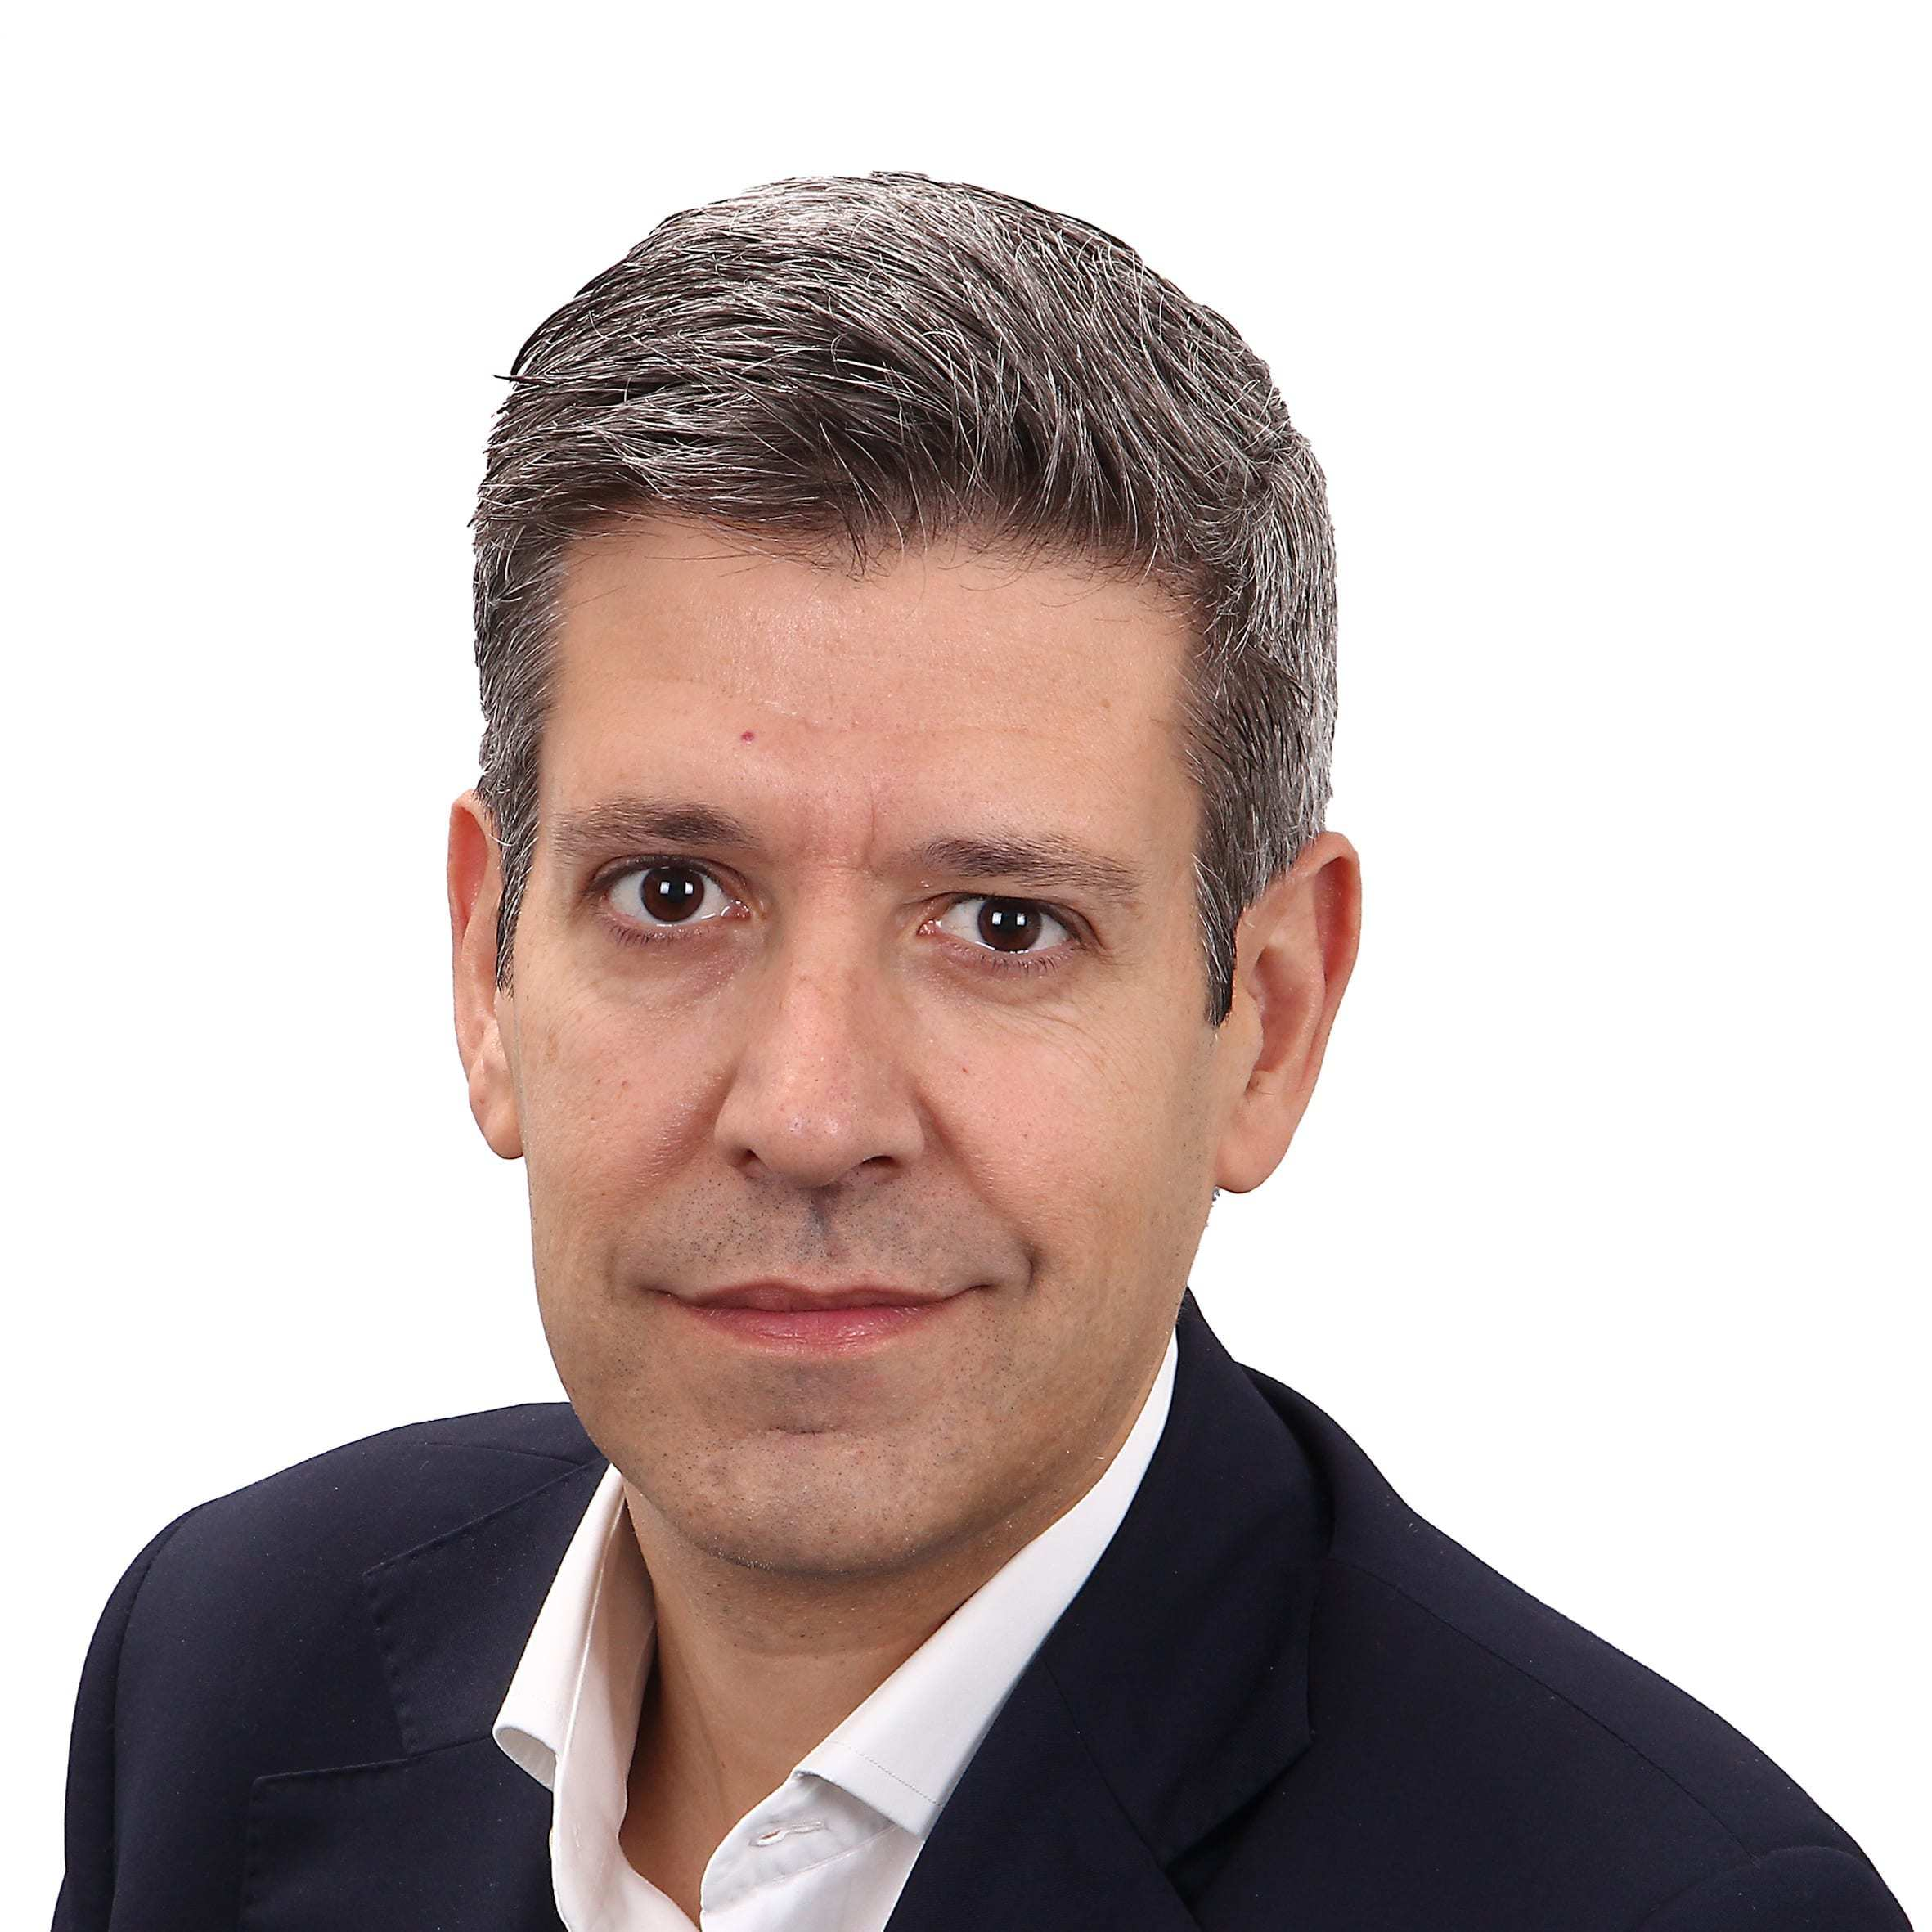 Guillermo Martínez Is Director Of Digital Transformation And Architecture  In The Corporate Technology Area In Santander He Has An Extensive  Experience In